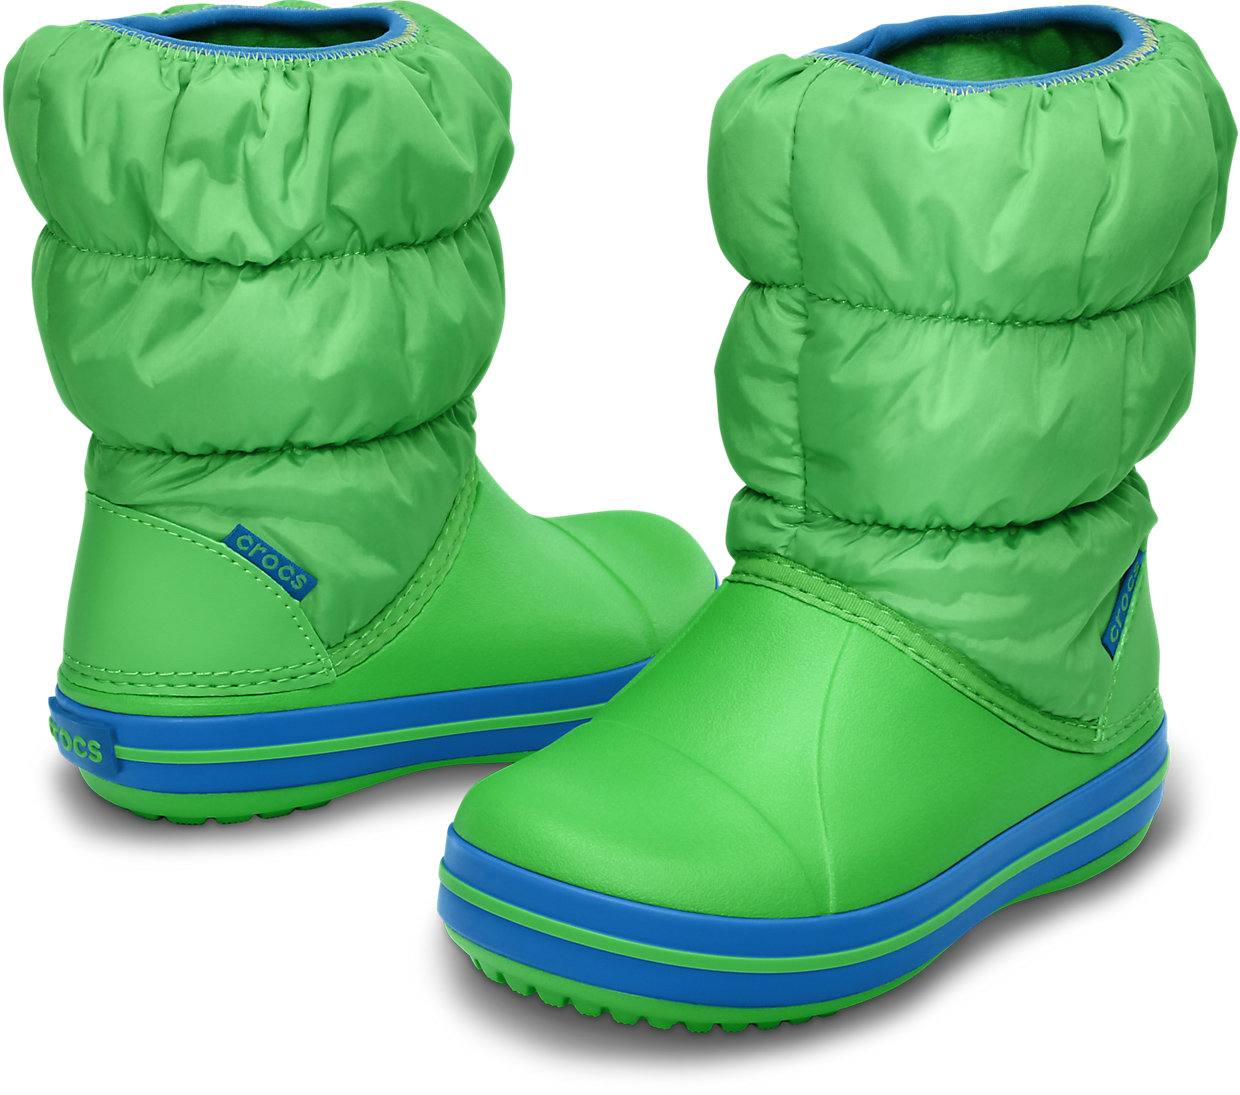 993960ecafd1f Crocs Winter Puff Boot Kids